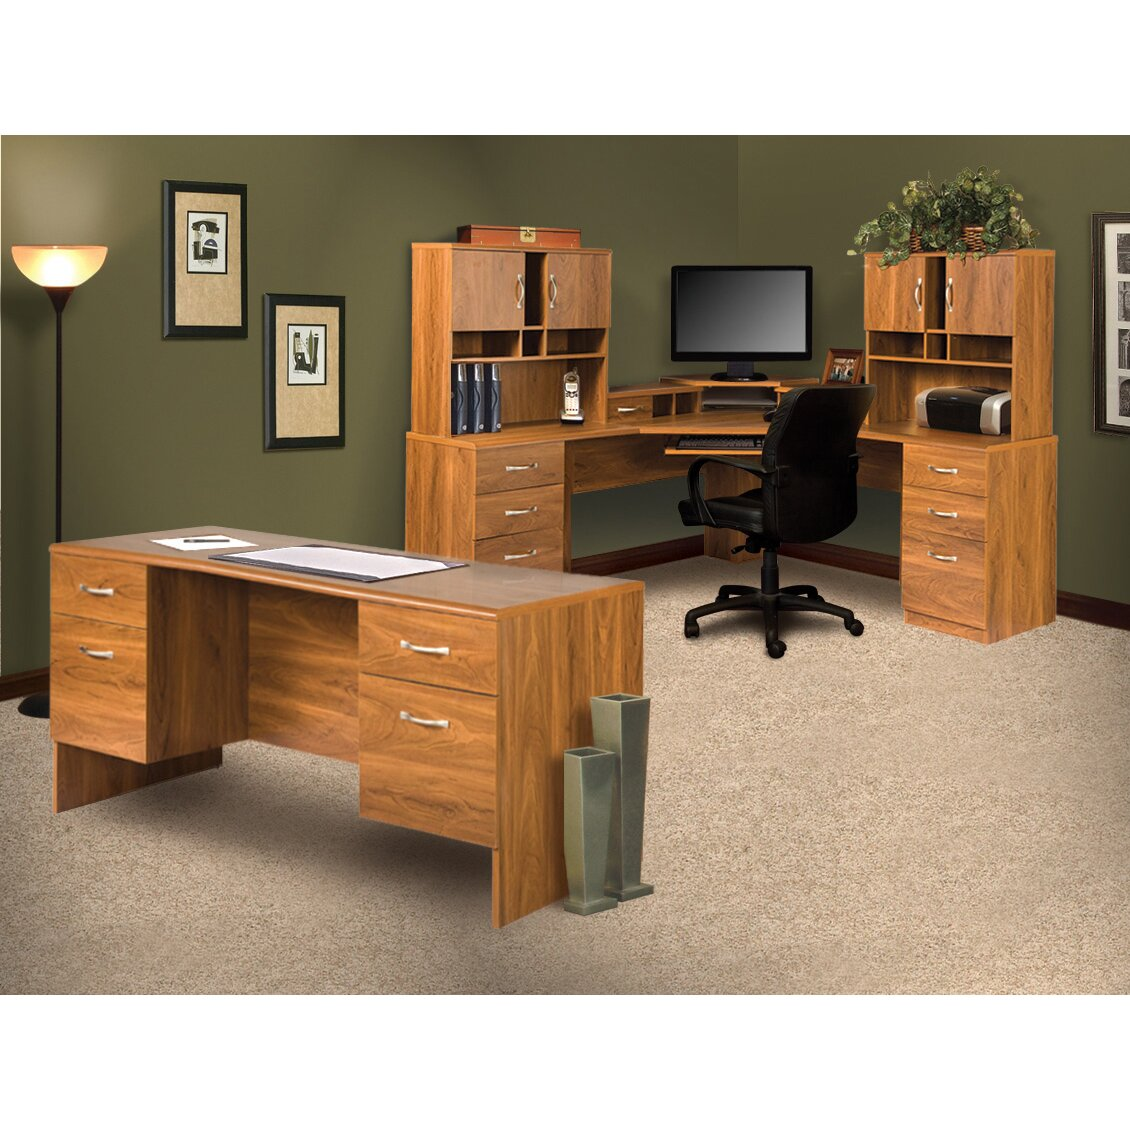 Corner Office Desk Home Laptop Table Workstation Computer: OS Home & Office Furniture Office Adaptations Corner